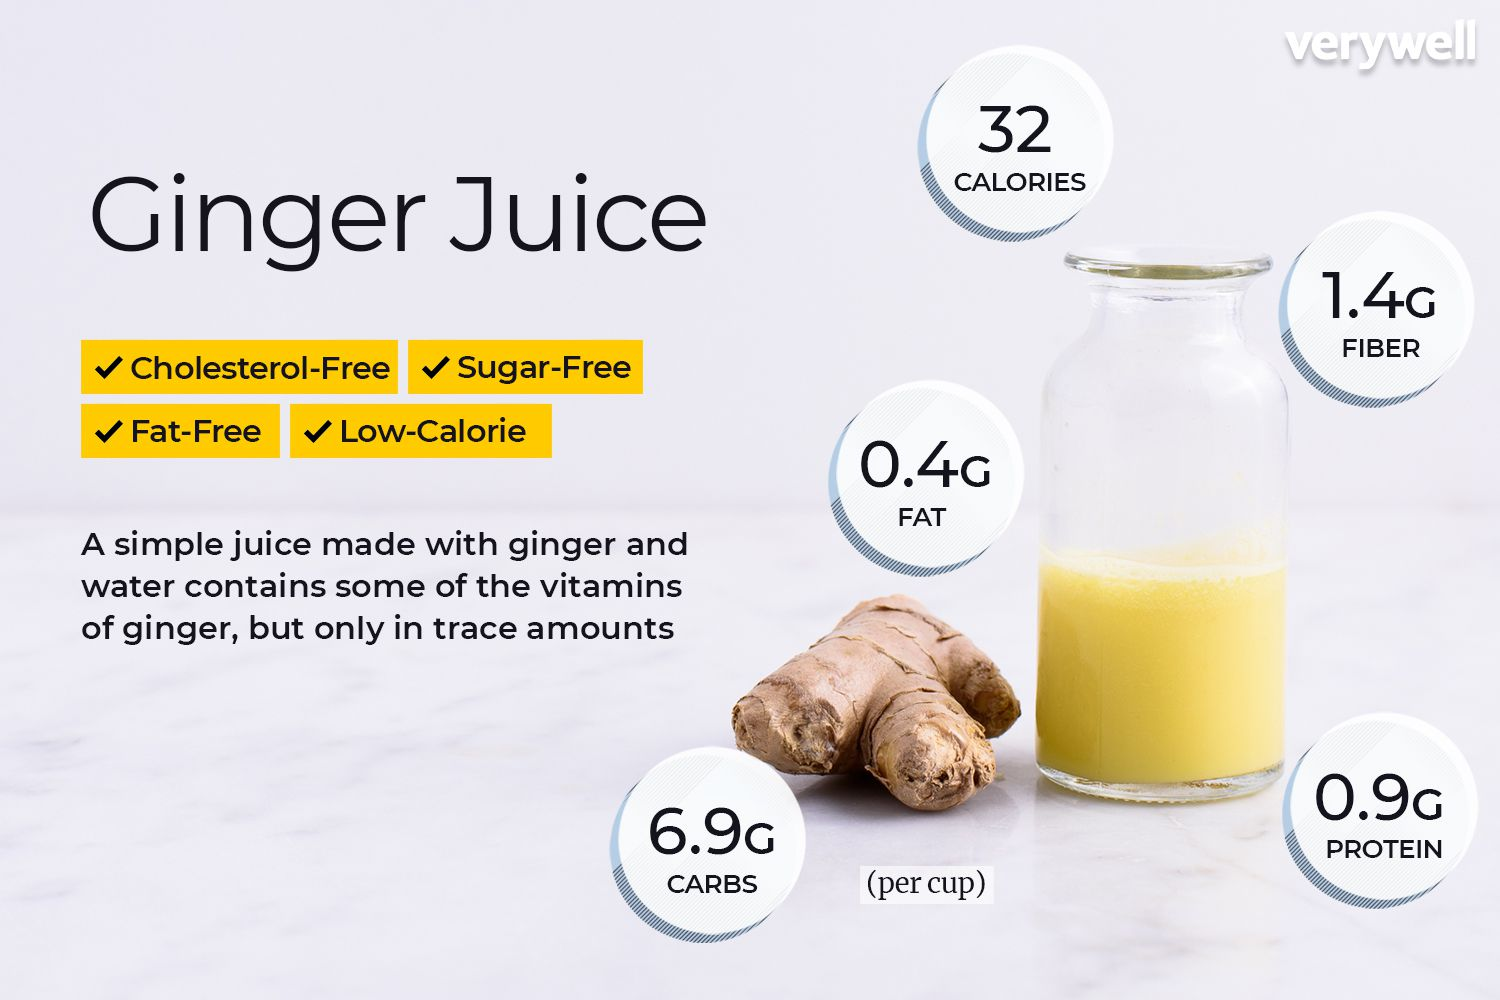 ginger juice nutrition facts: calories, carbs, and health